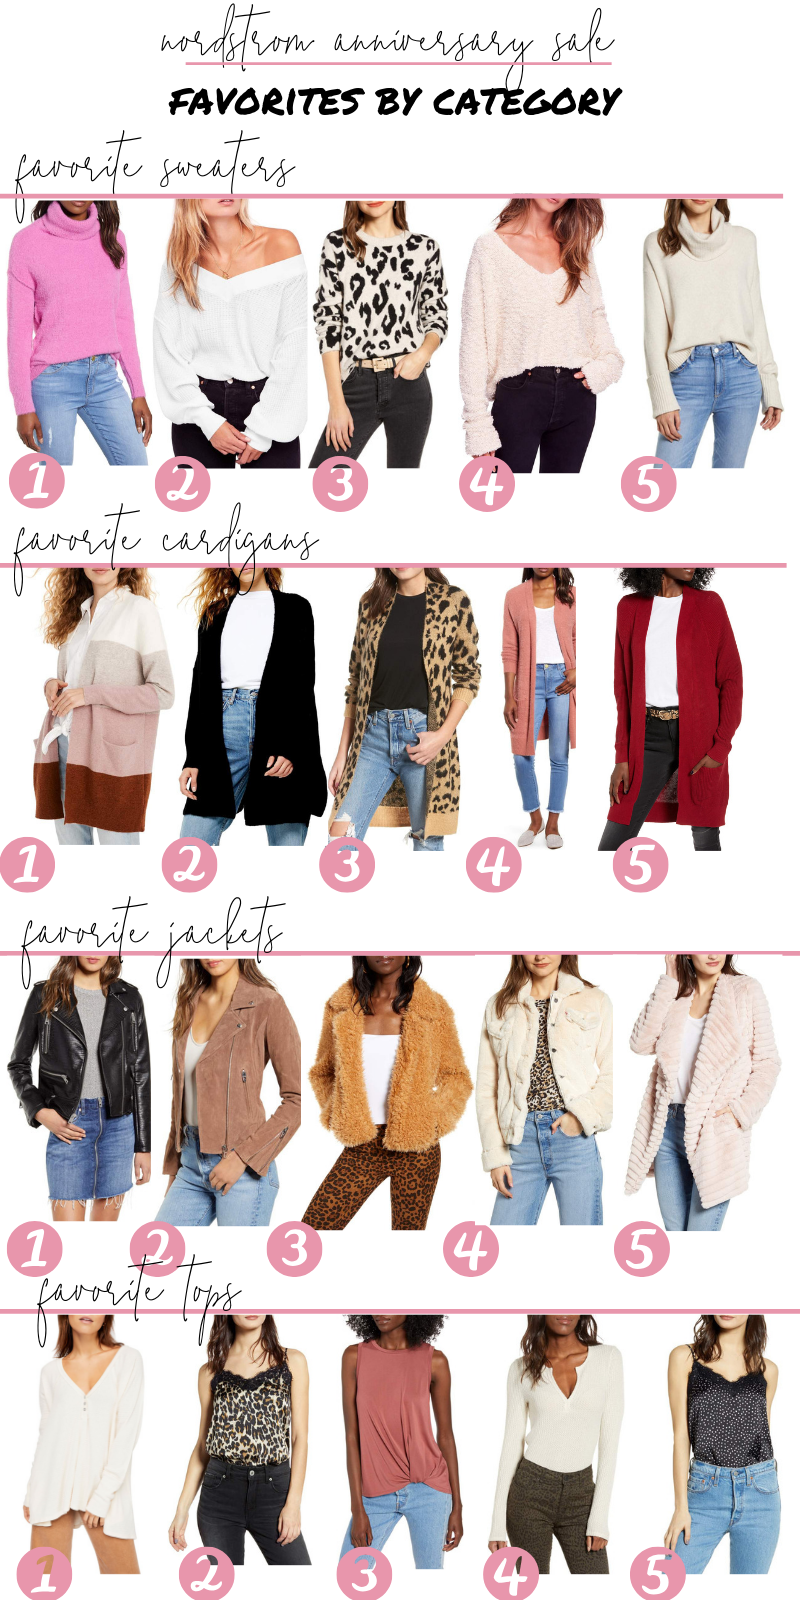 Nordstrom Anniversary Sale Favorites 2019